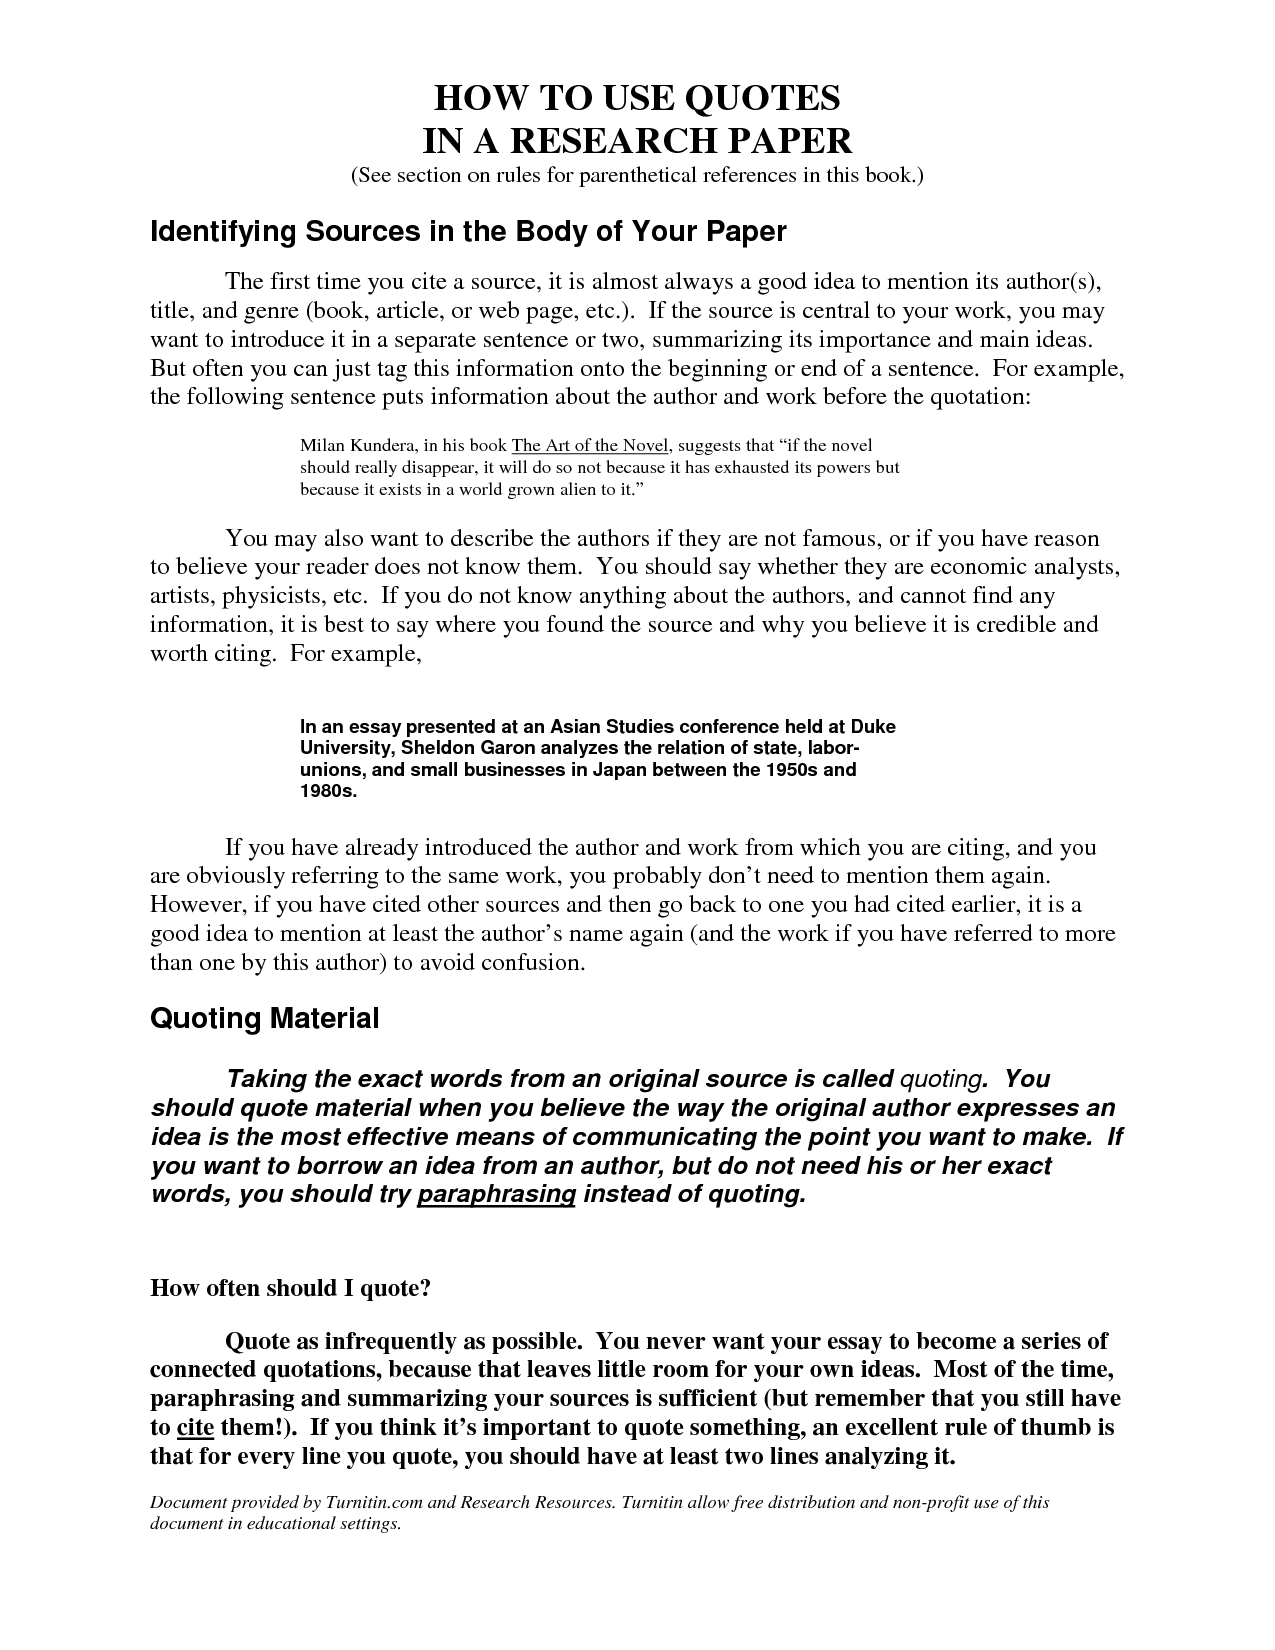 011 Best Solutions Of Writing Quotes In Essays Marvelous Embedding On Quotestopics Essay Example How To Quote Book Formidable A An Cite Mla Using Title Full